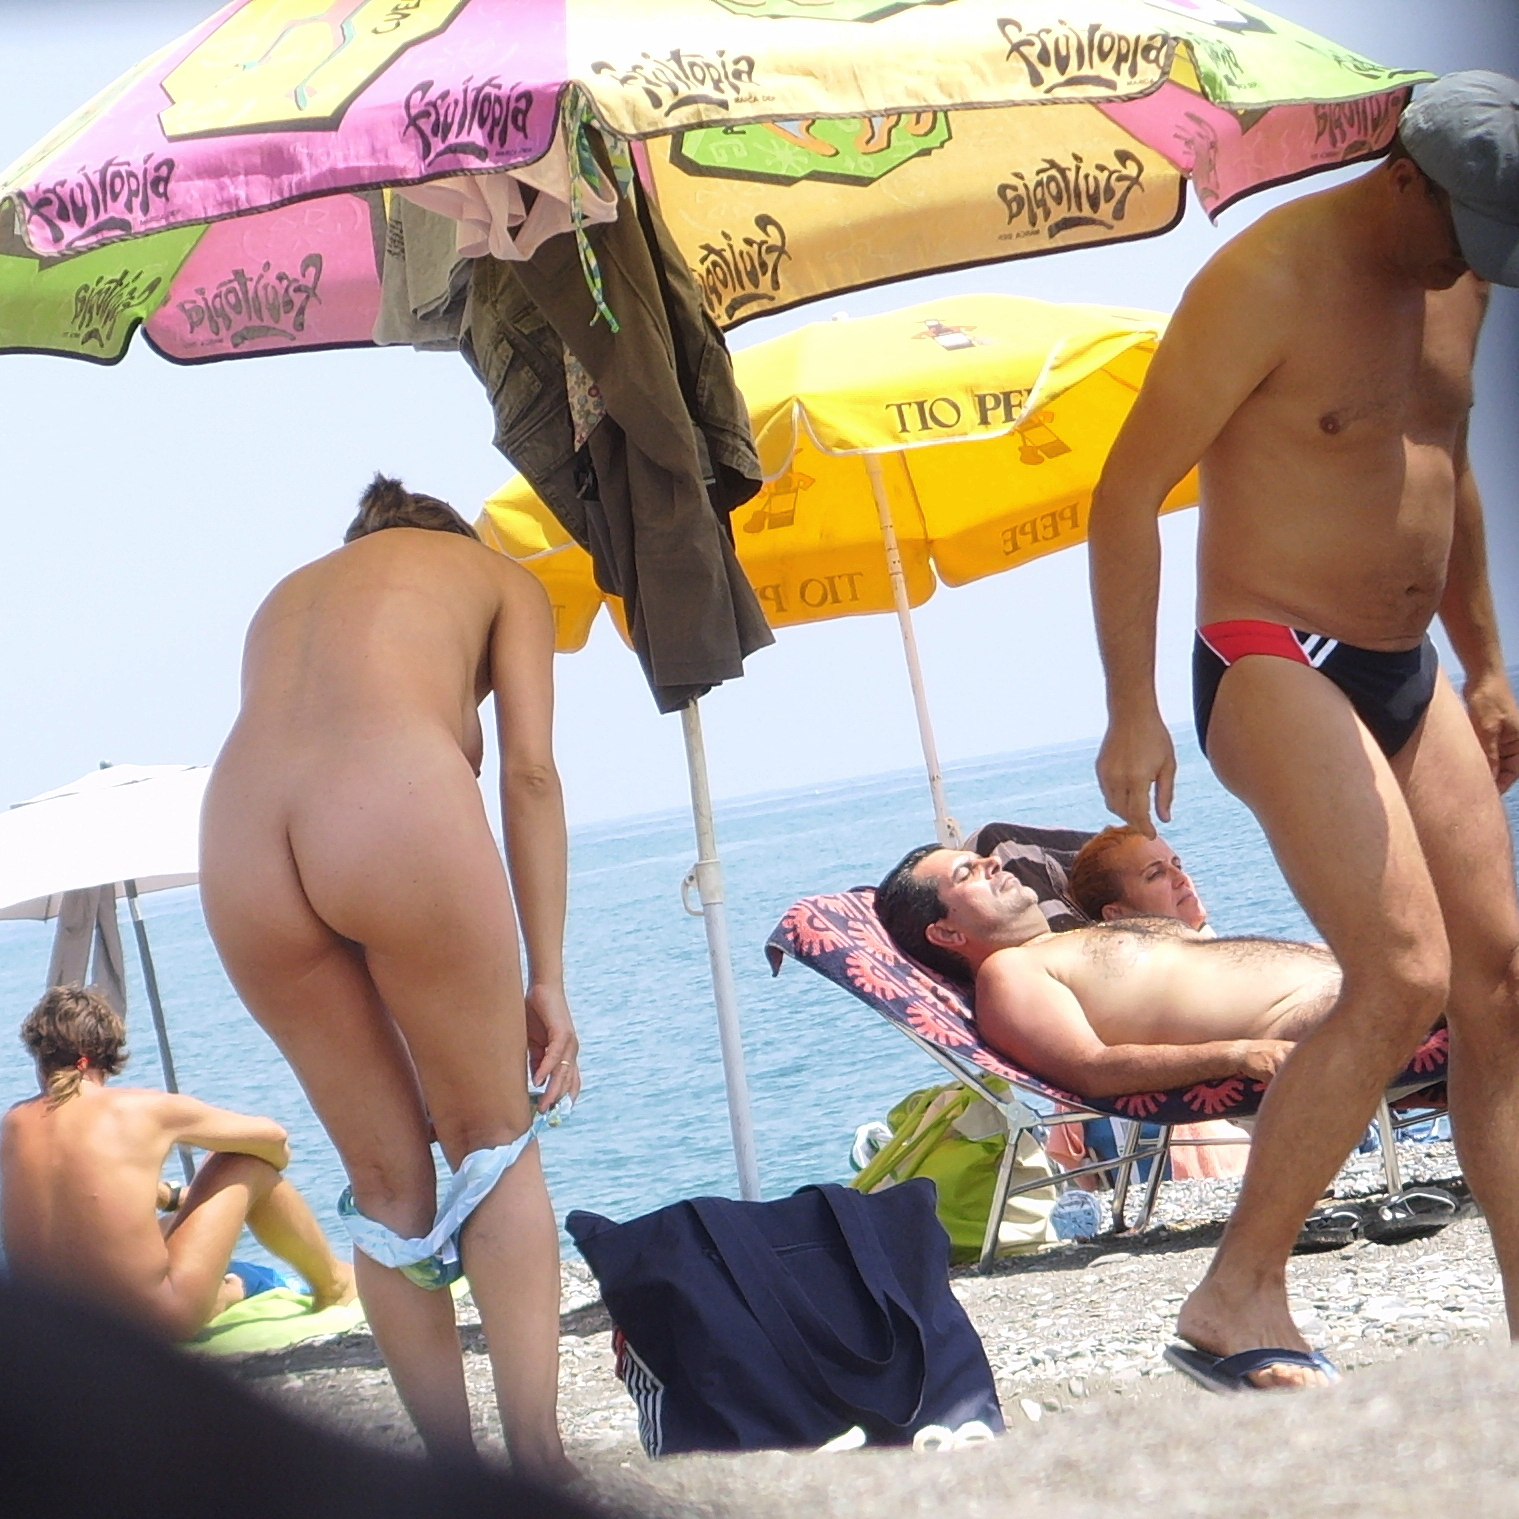 https://voyeurpapa.com/wp-content/uploads/2016/12/Nudists-family-nude-beach-12.jpg